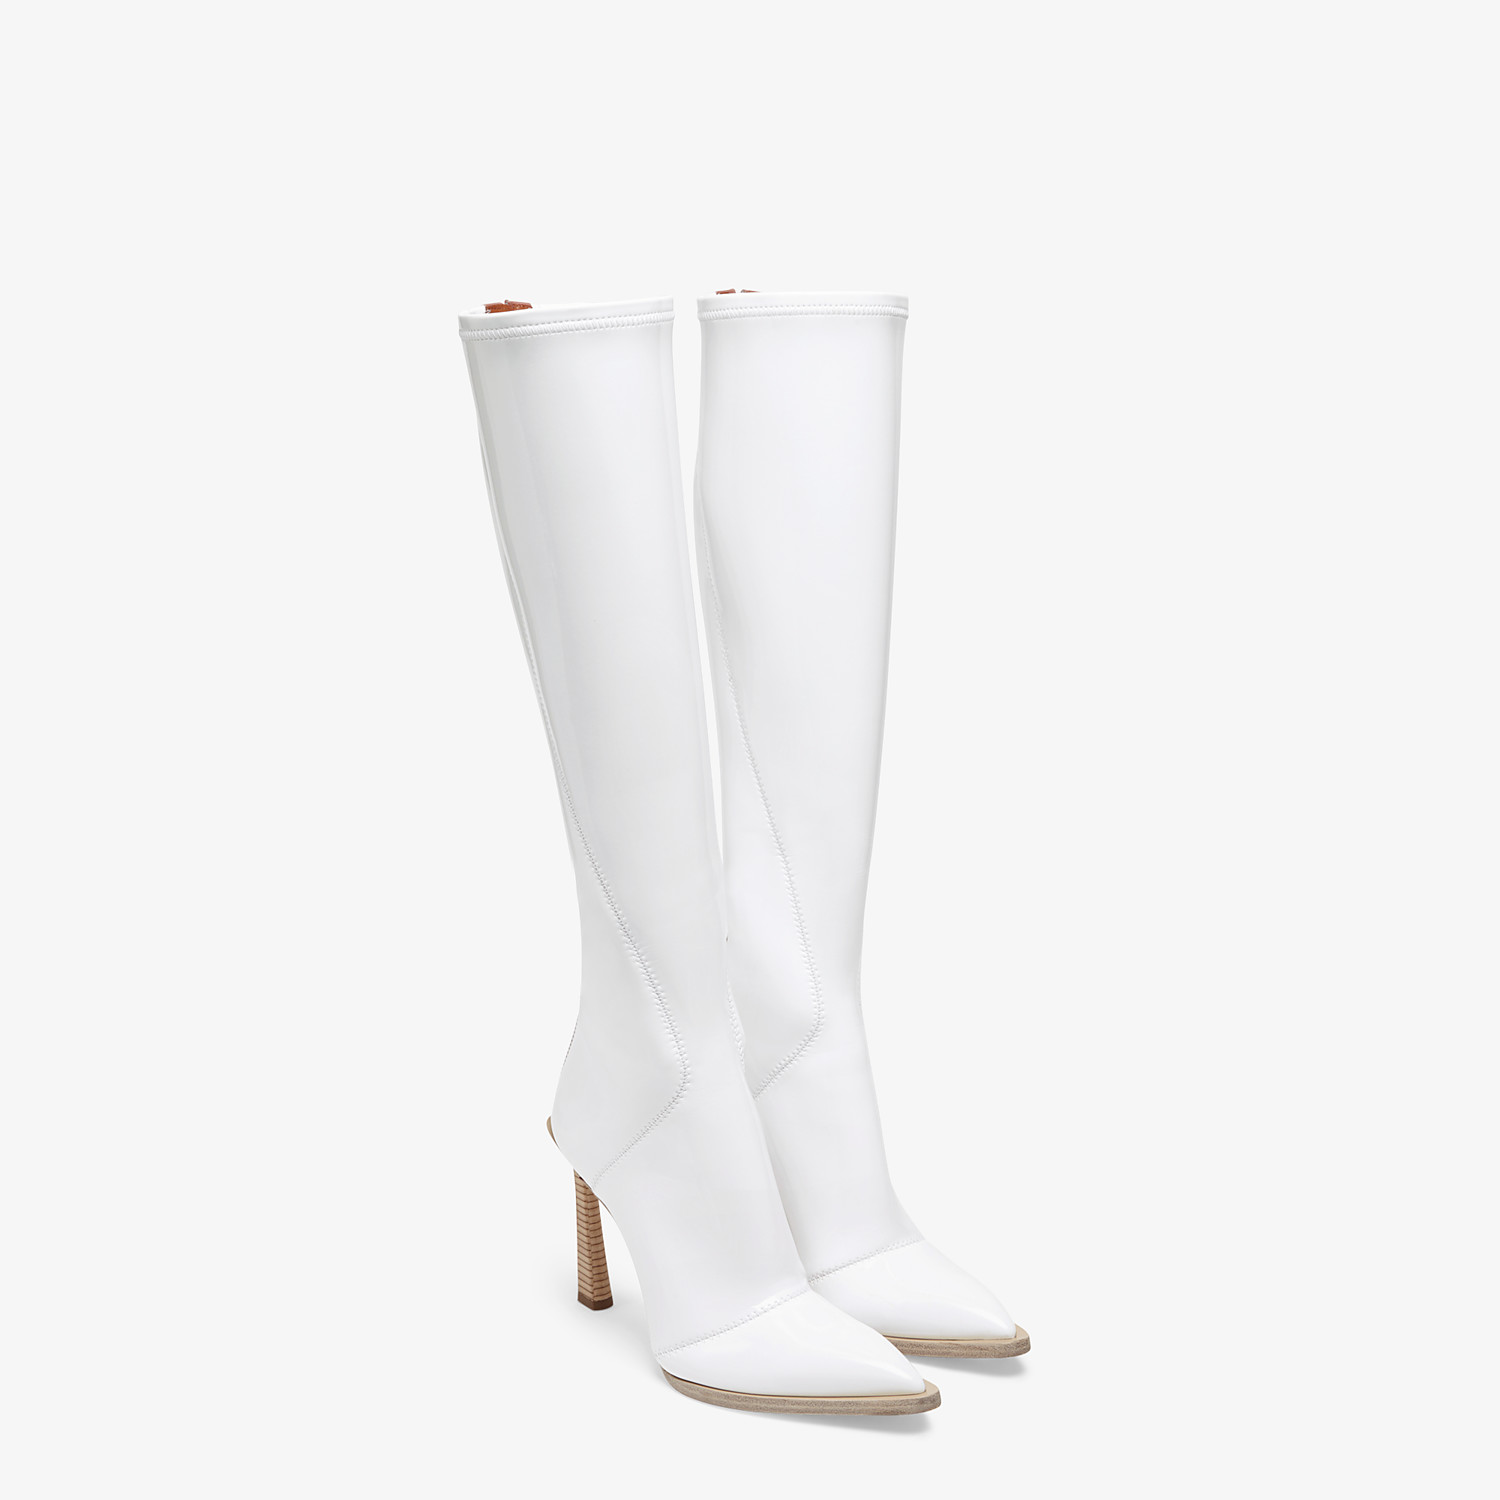 FENDI BOOTS - Boot in glossy white neoprene - view 4 detail